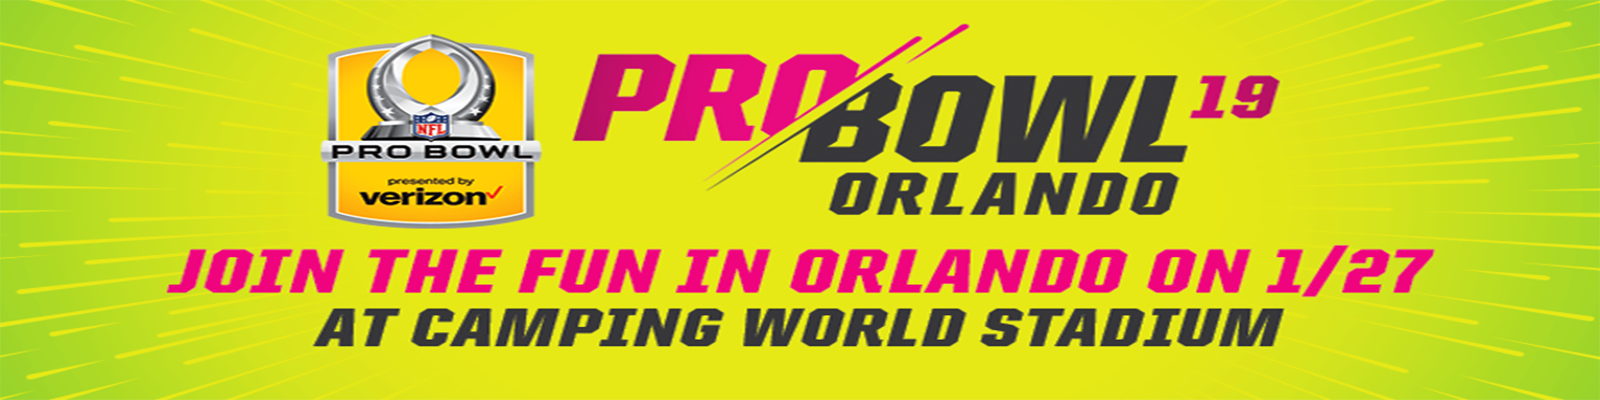 ORLANDO, Fla. (FNN SPORTS) - 2019 NFL PRO BOWL TICKETS ON SALE NOW